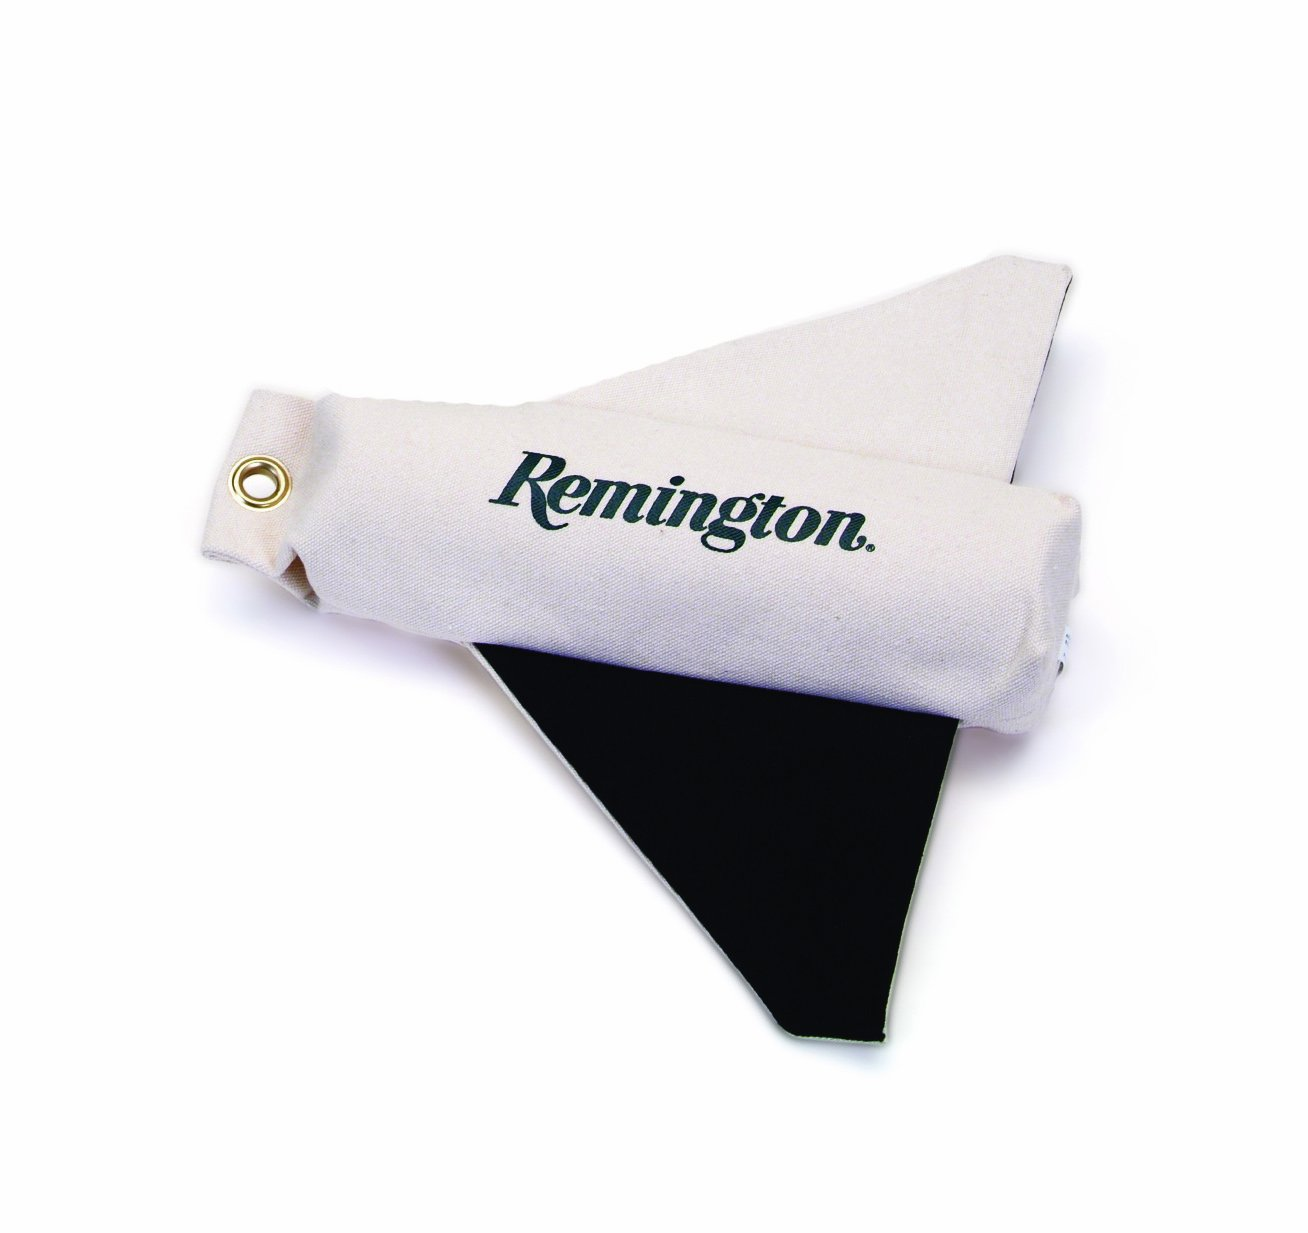 Remington 2-by-9-Inch Winged Retriever Field Training Device